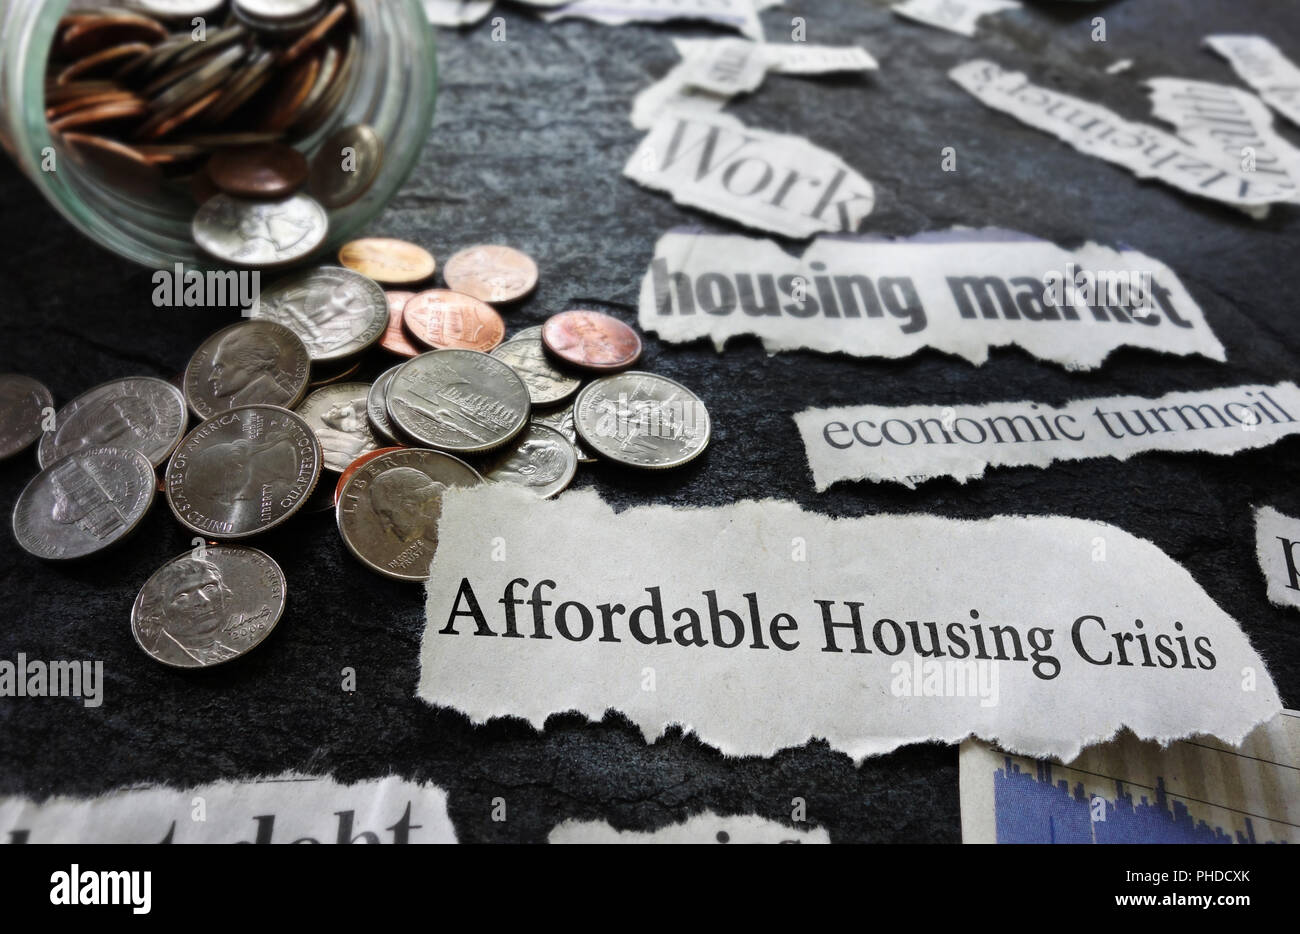 Affordable Housing Crisis news - Stock Image